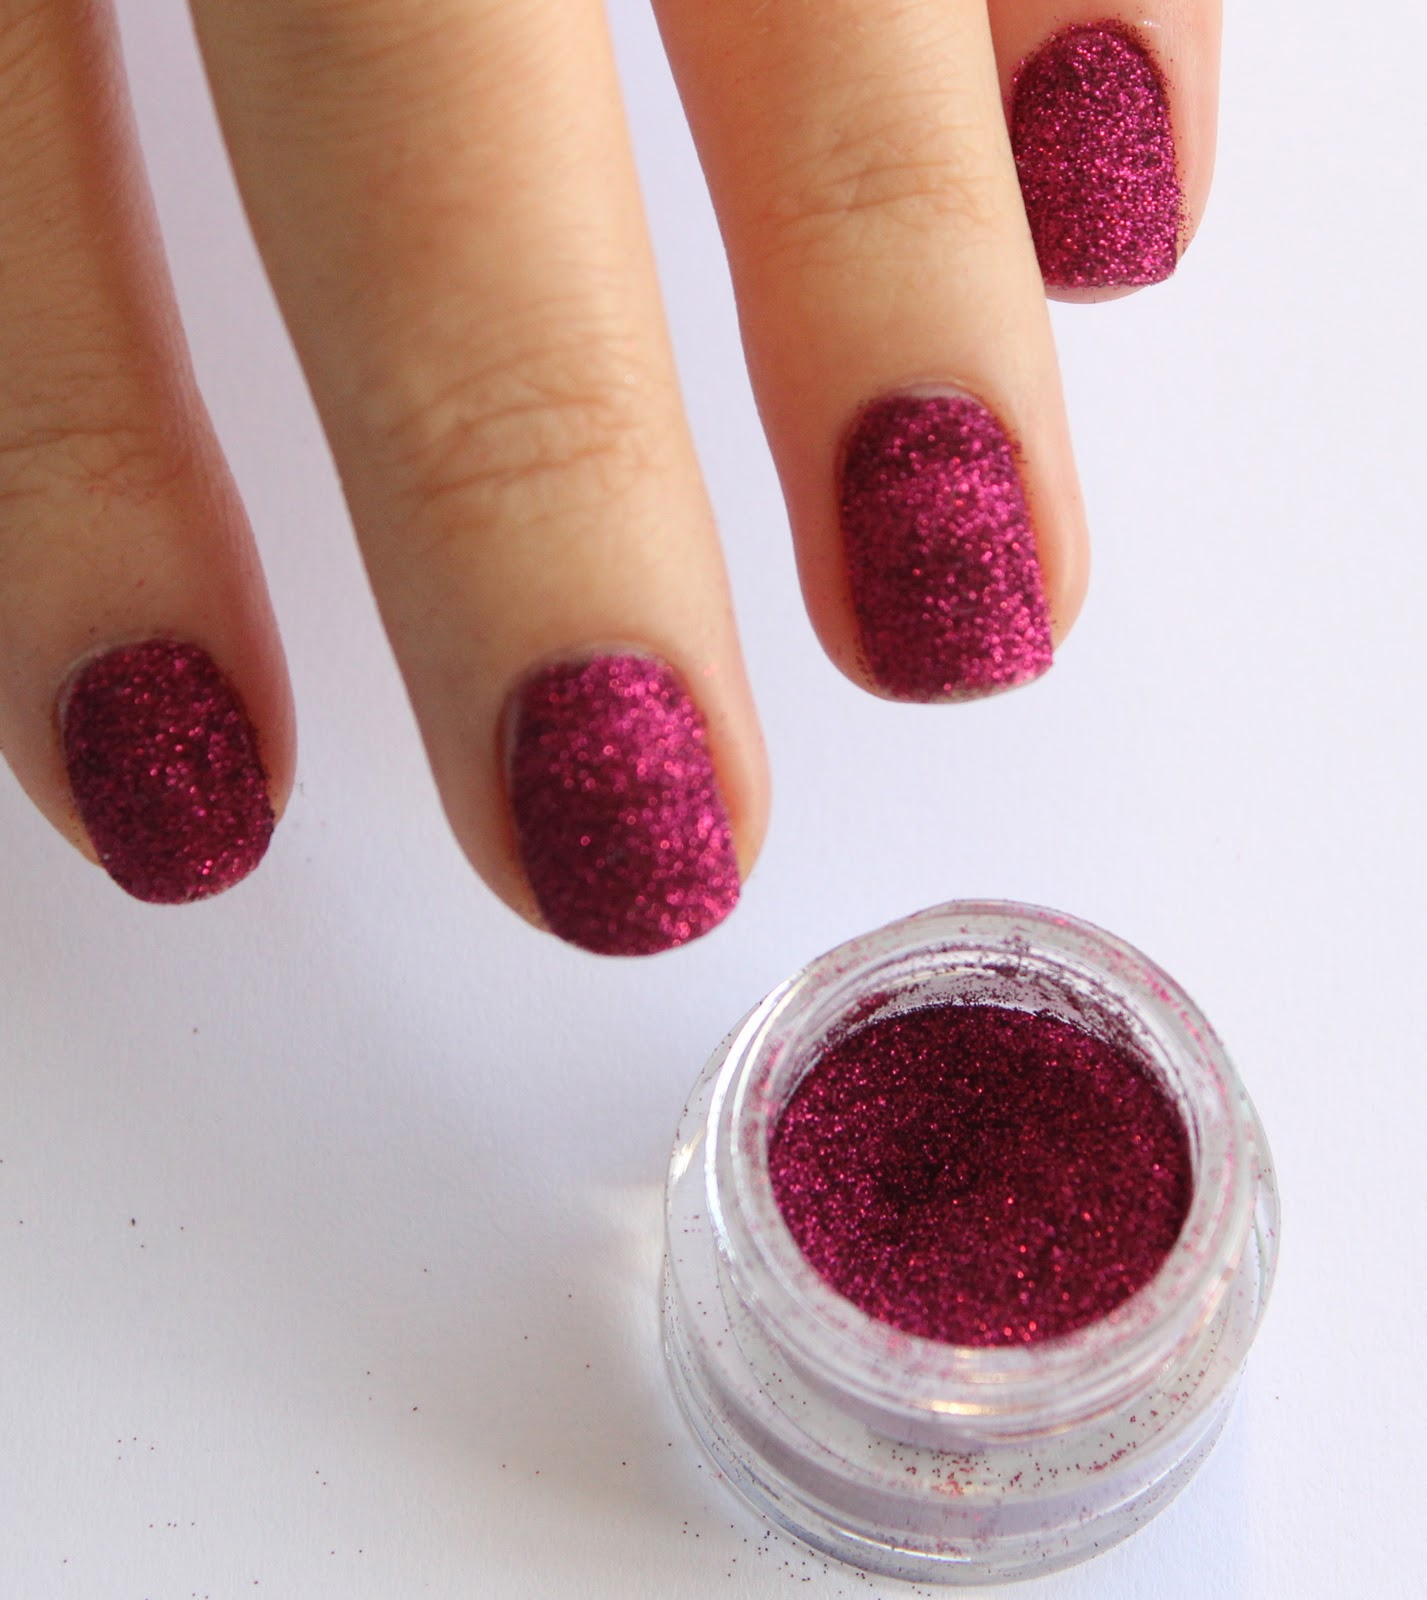 Nailed Gosh Nail Glitter